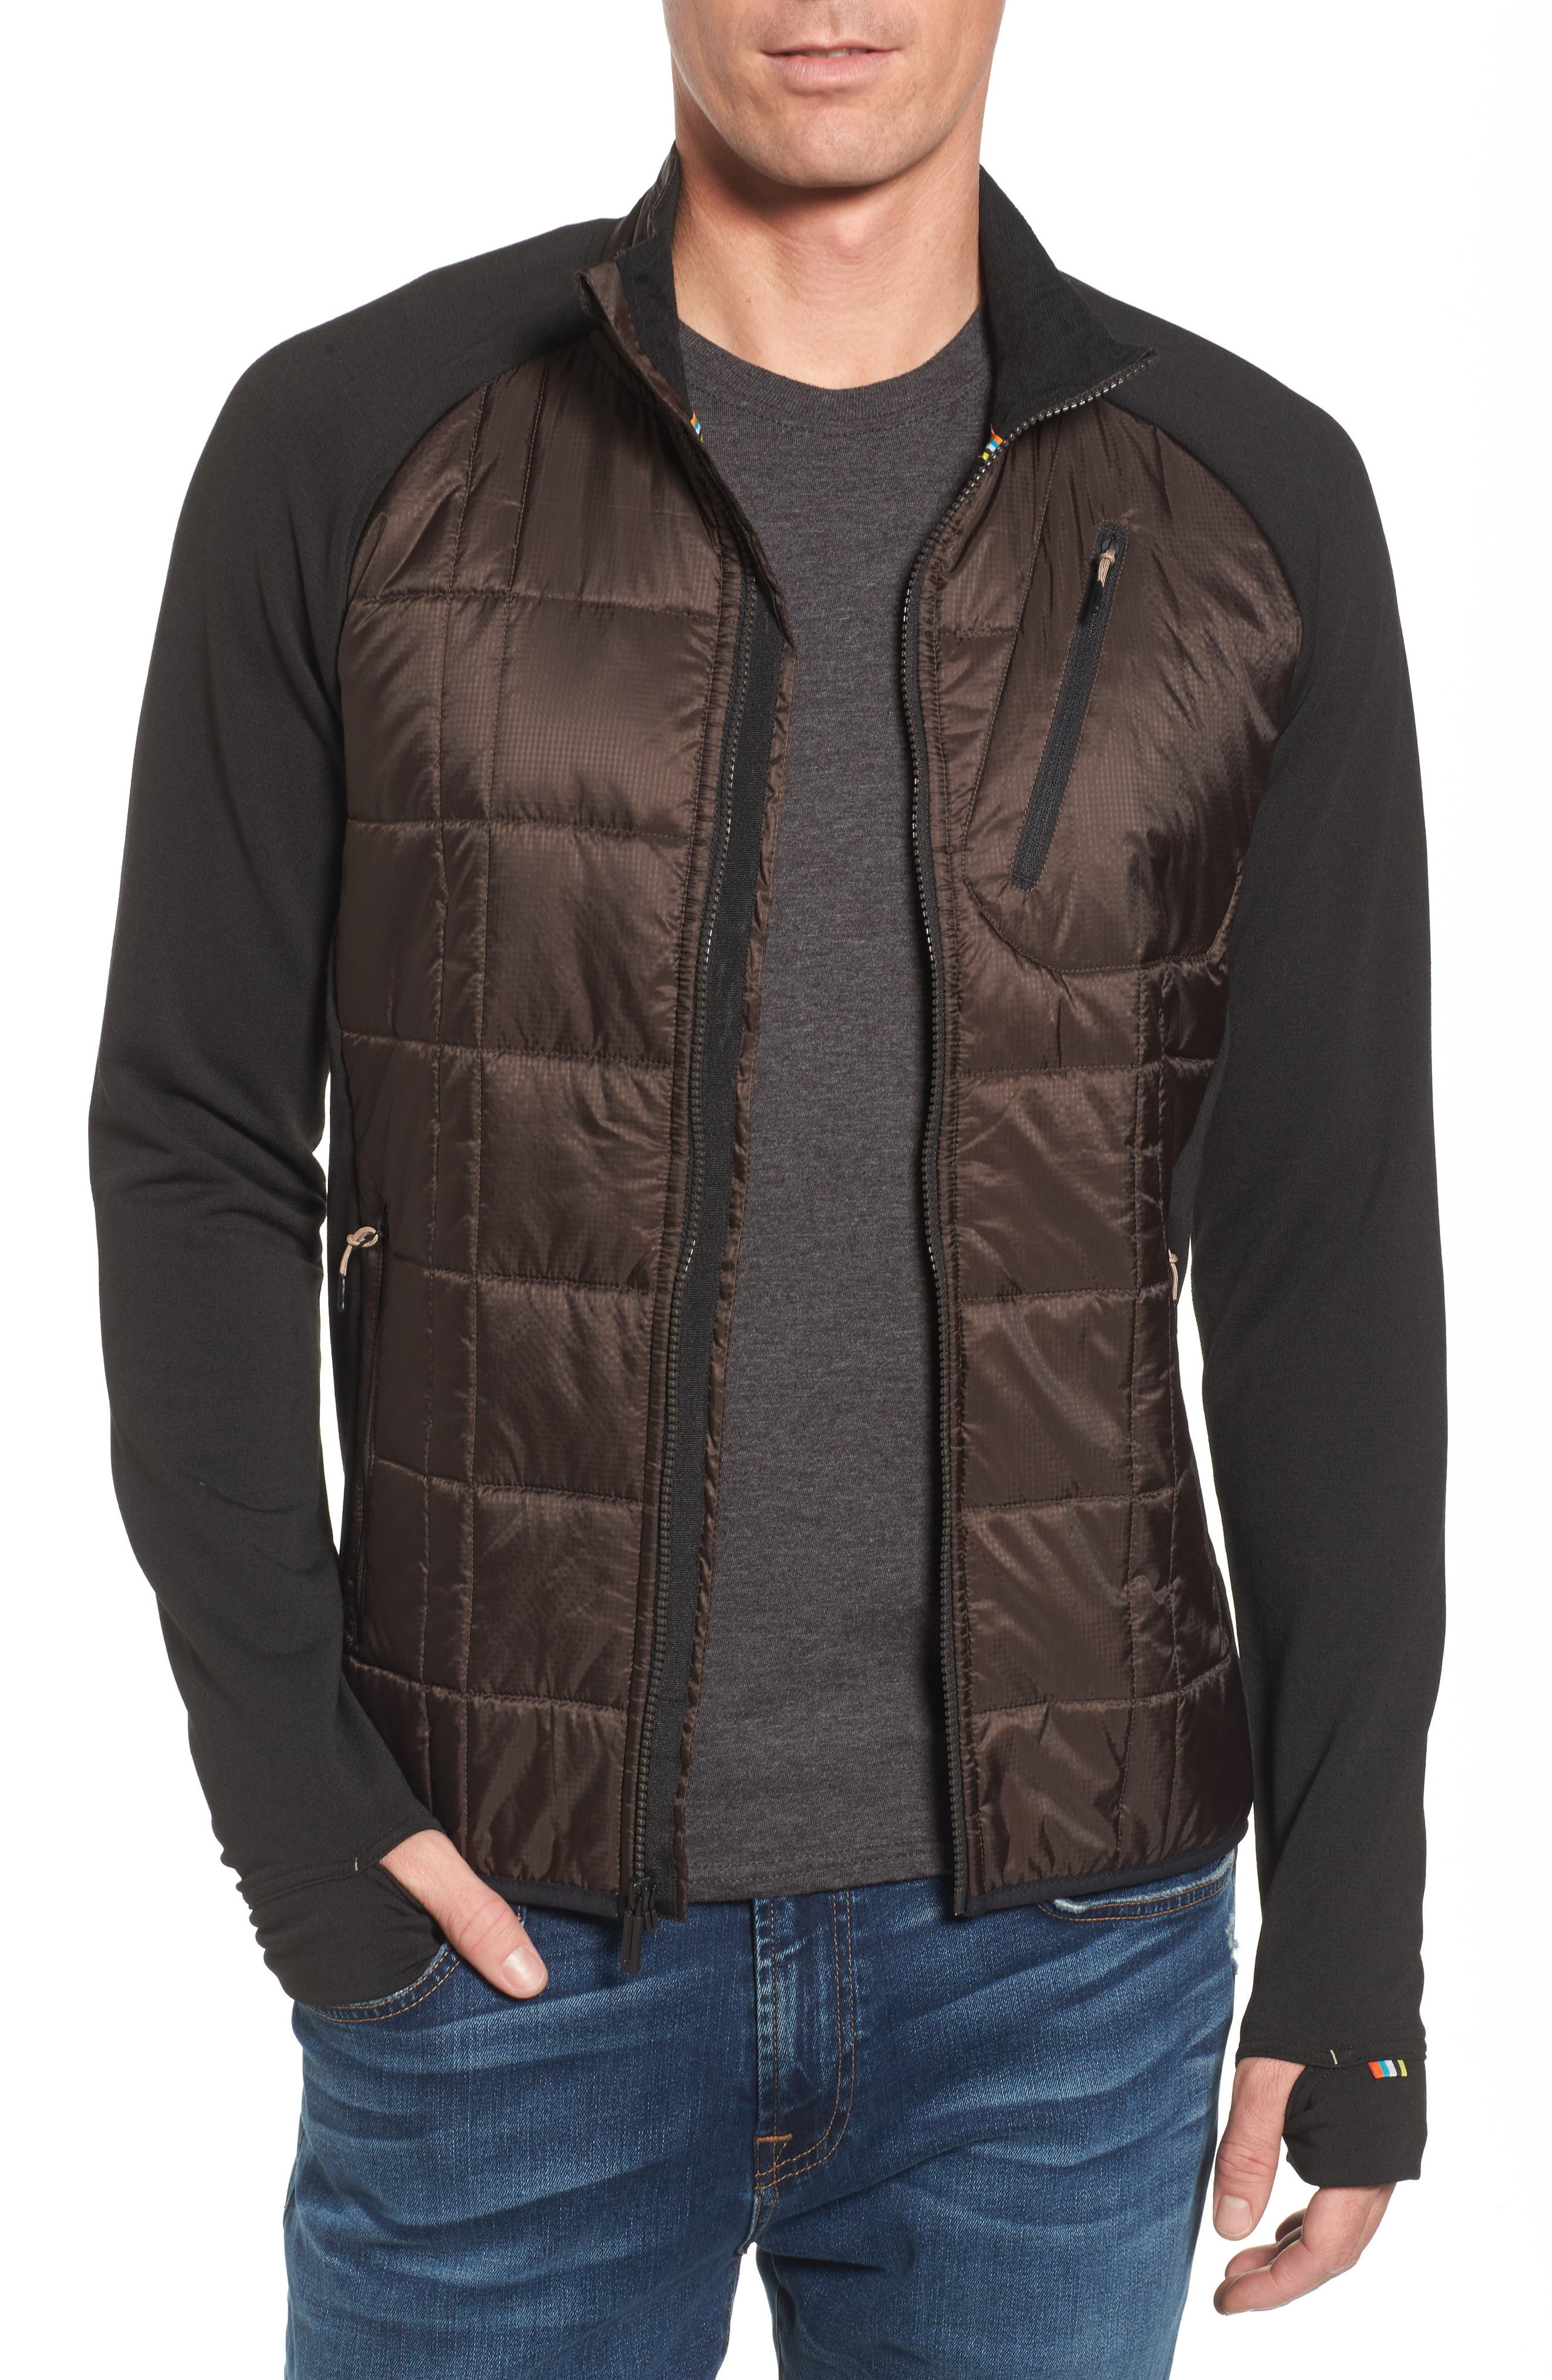 Corbet 120 Jacket,                         Main,                         color, Sumatra